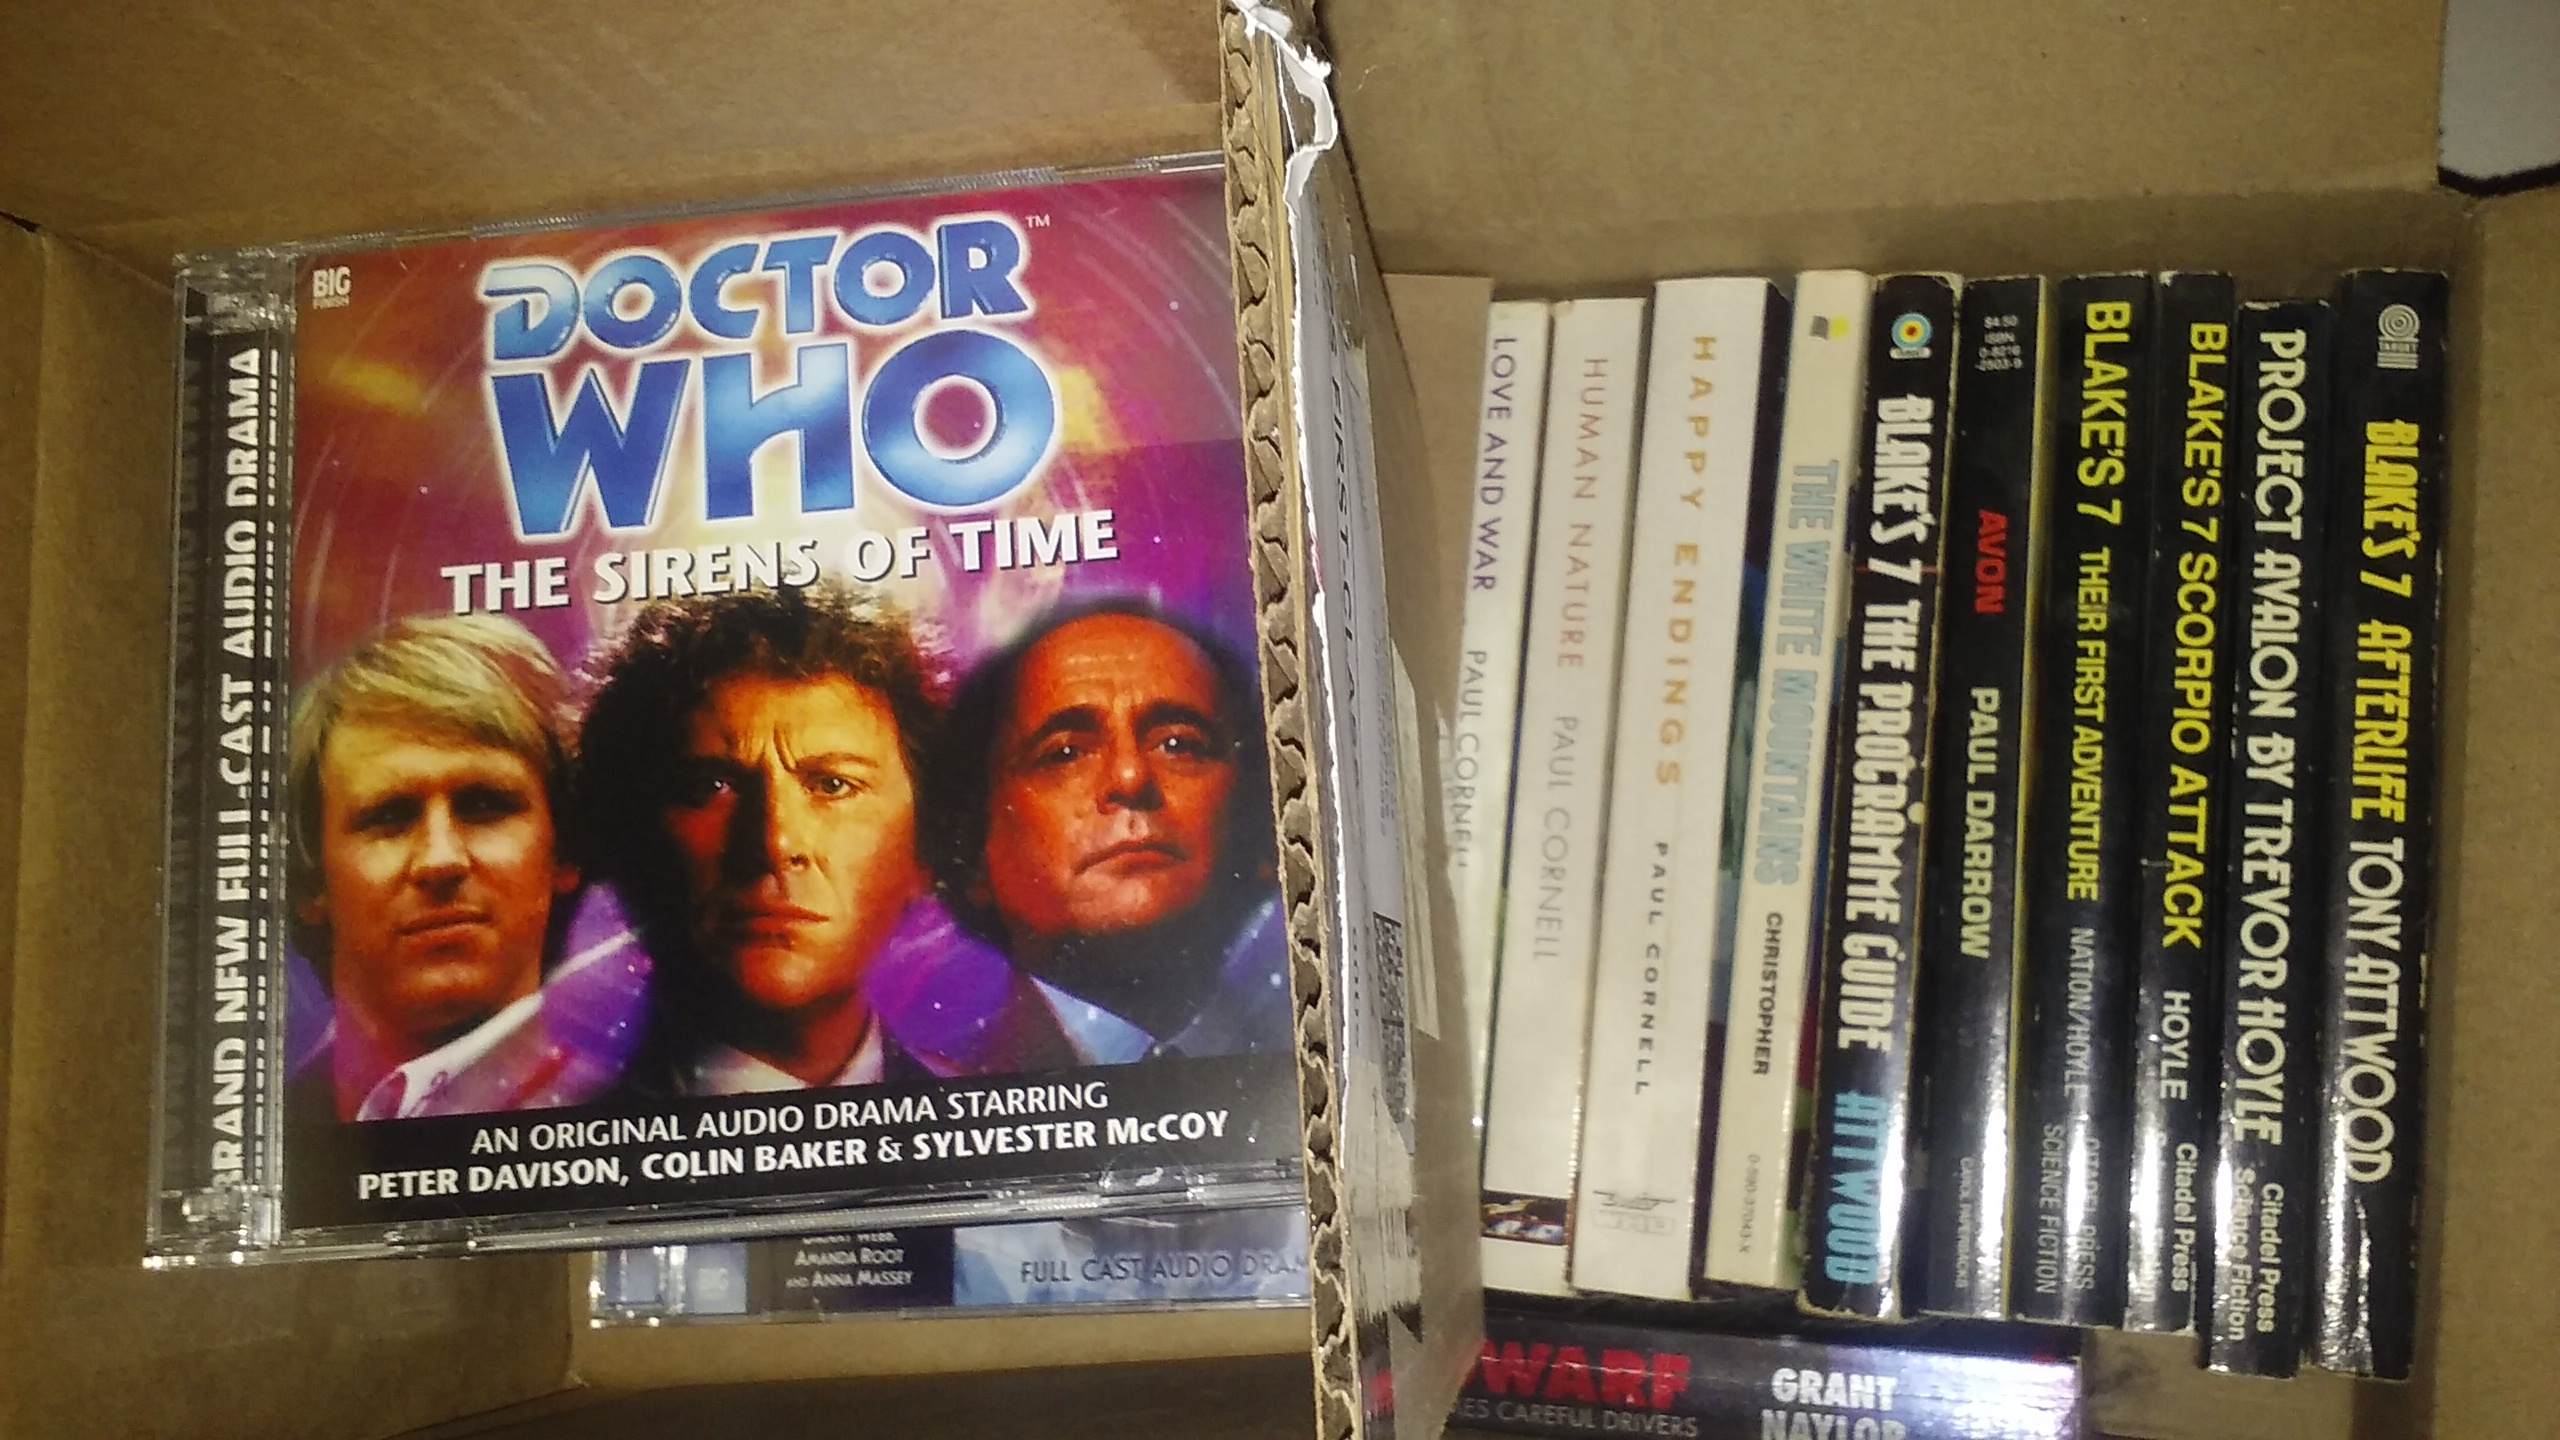 Doctor Who & Blake's 7 books & CDs